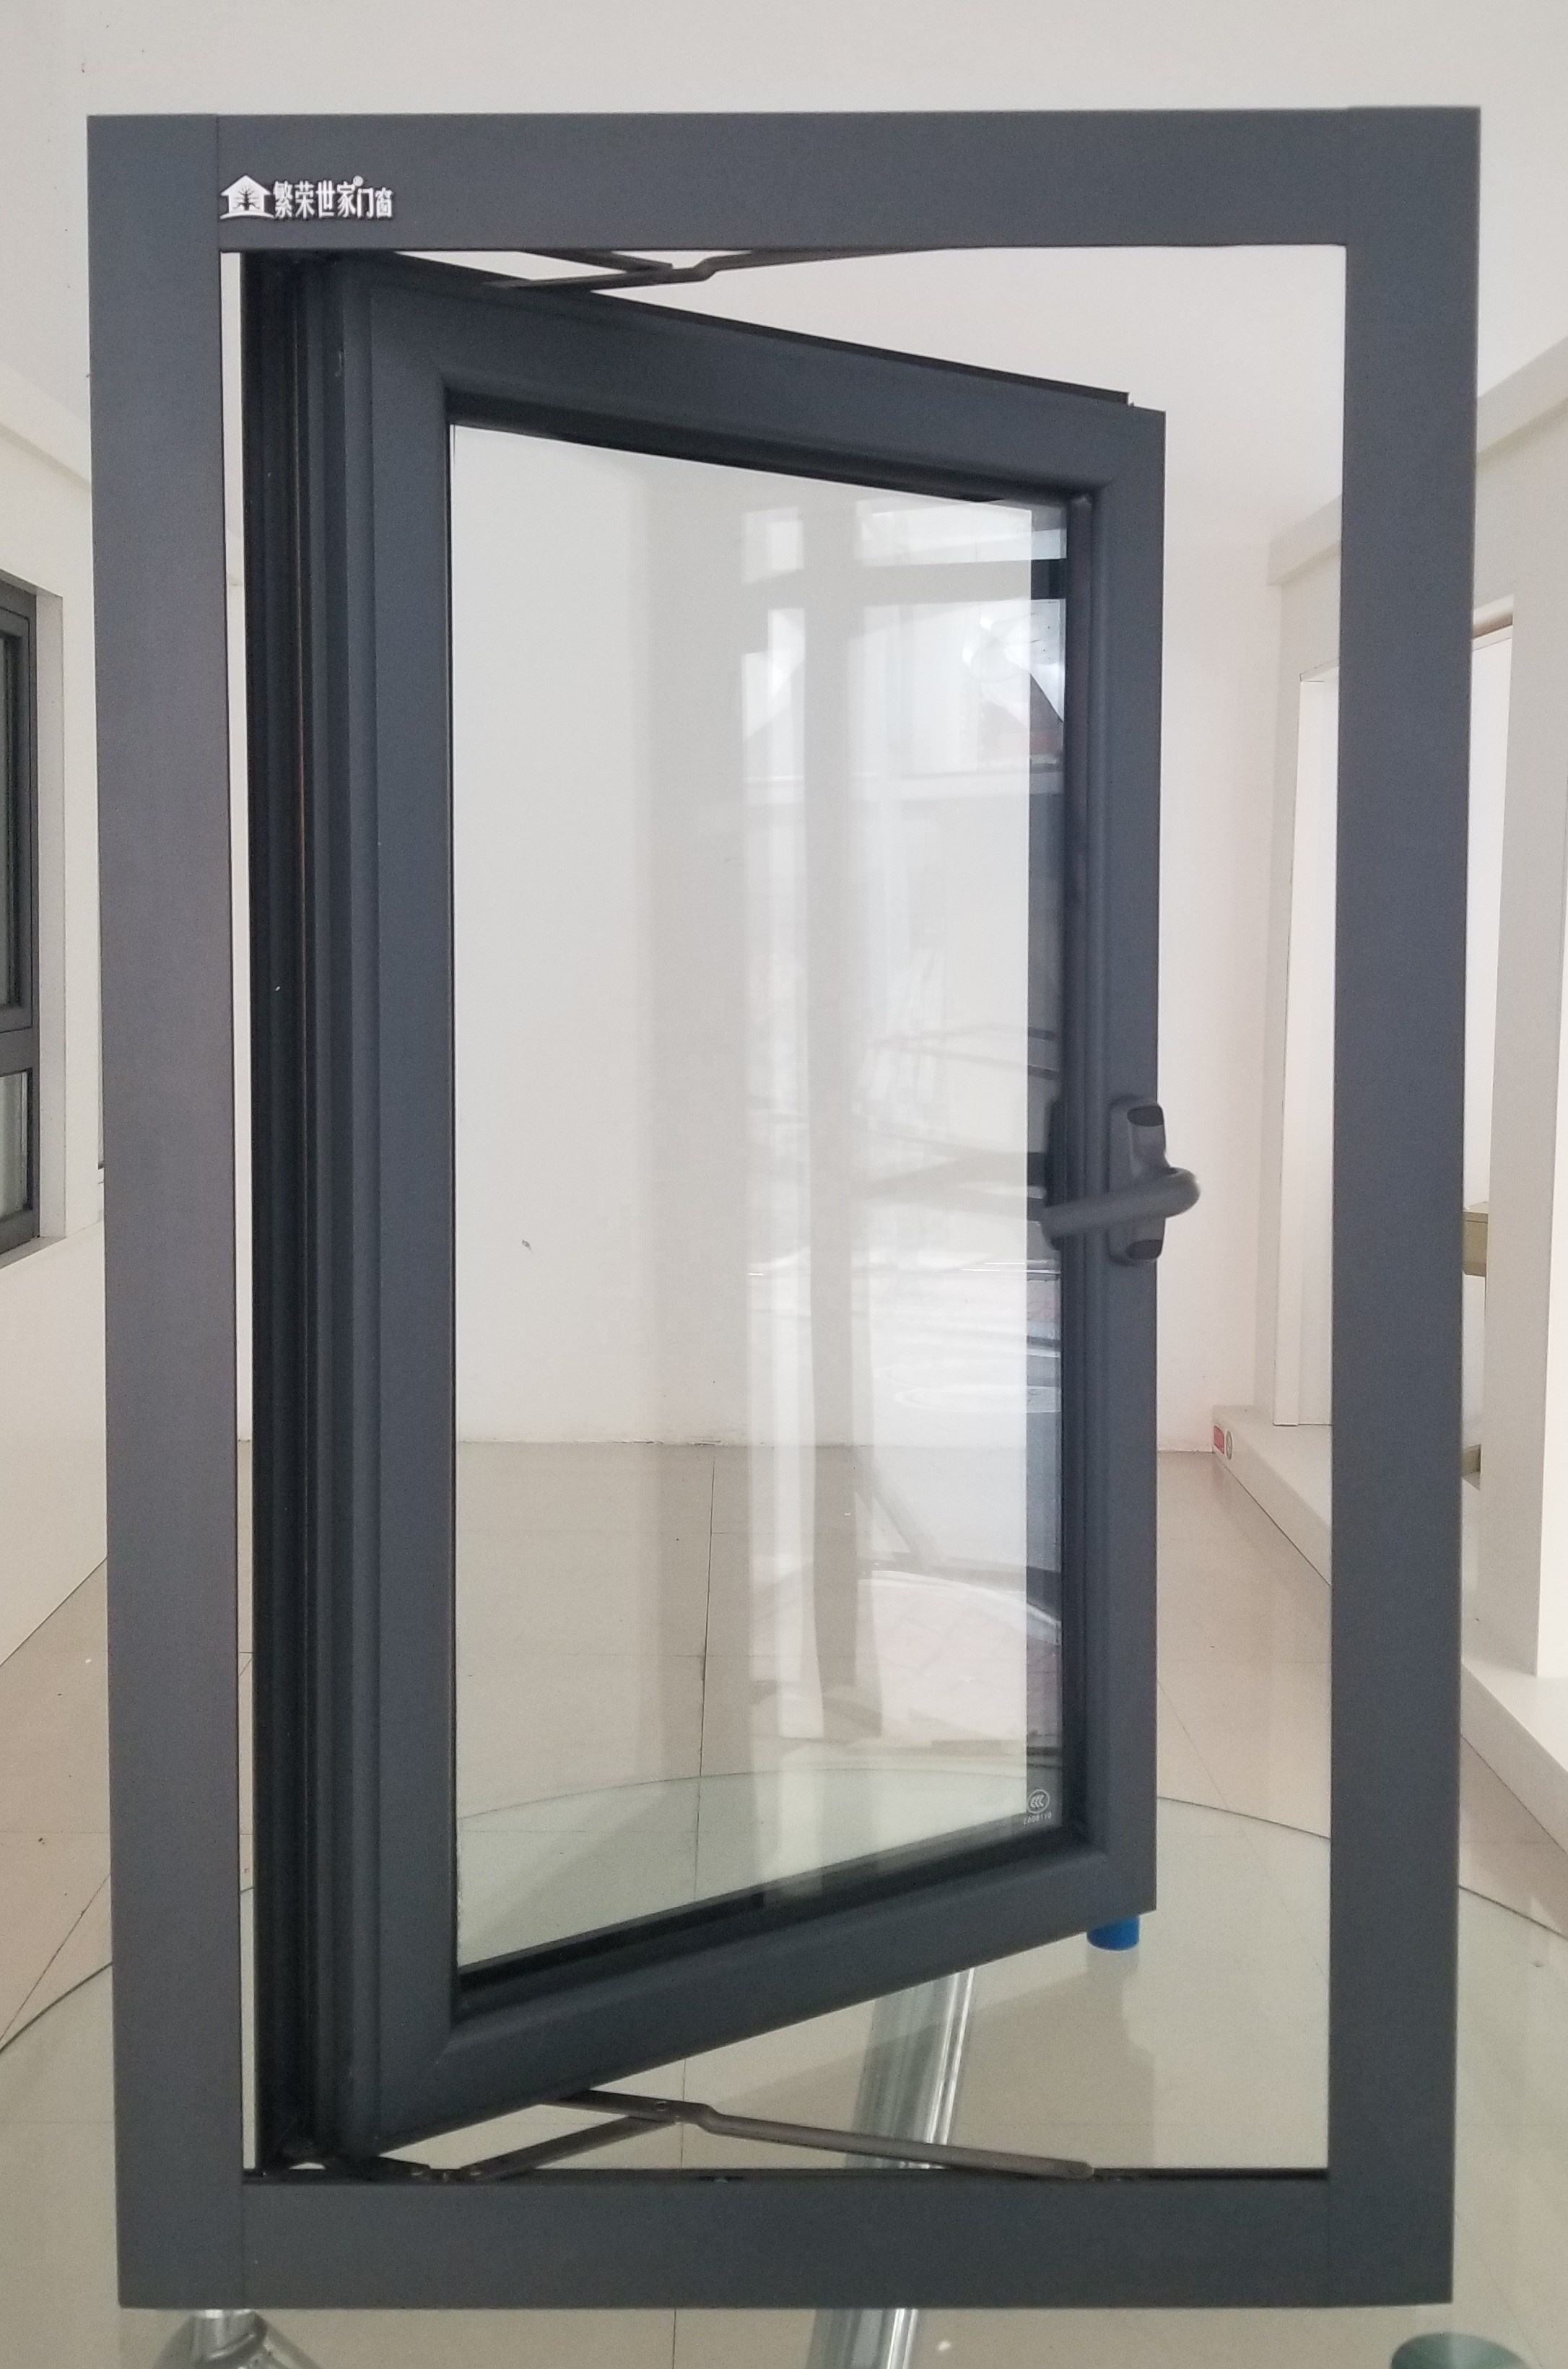 Aluminum Windows Price Philippines Prices with Tint Glass Casement